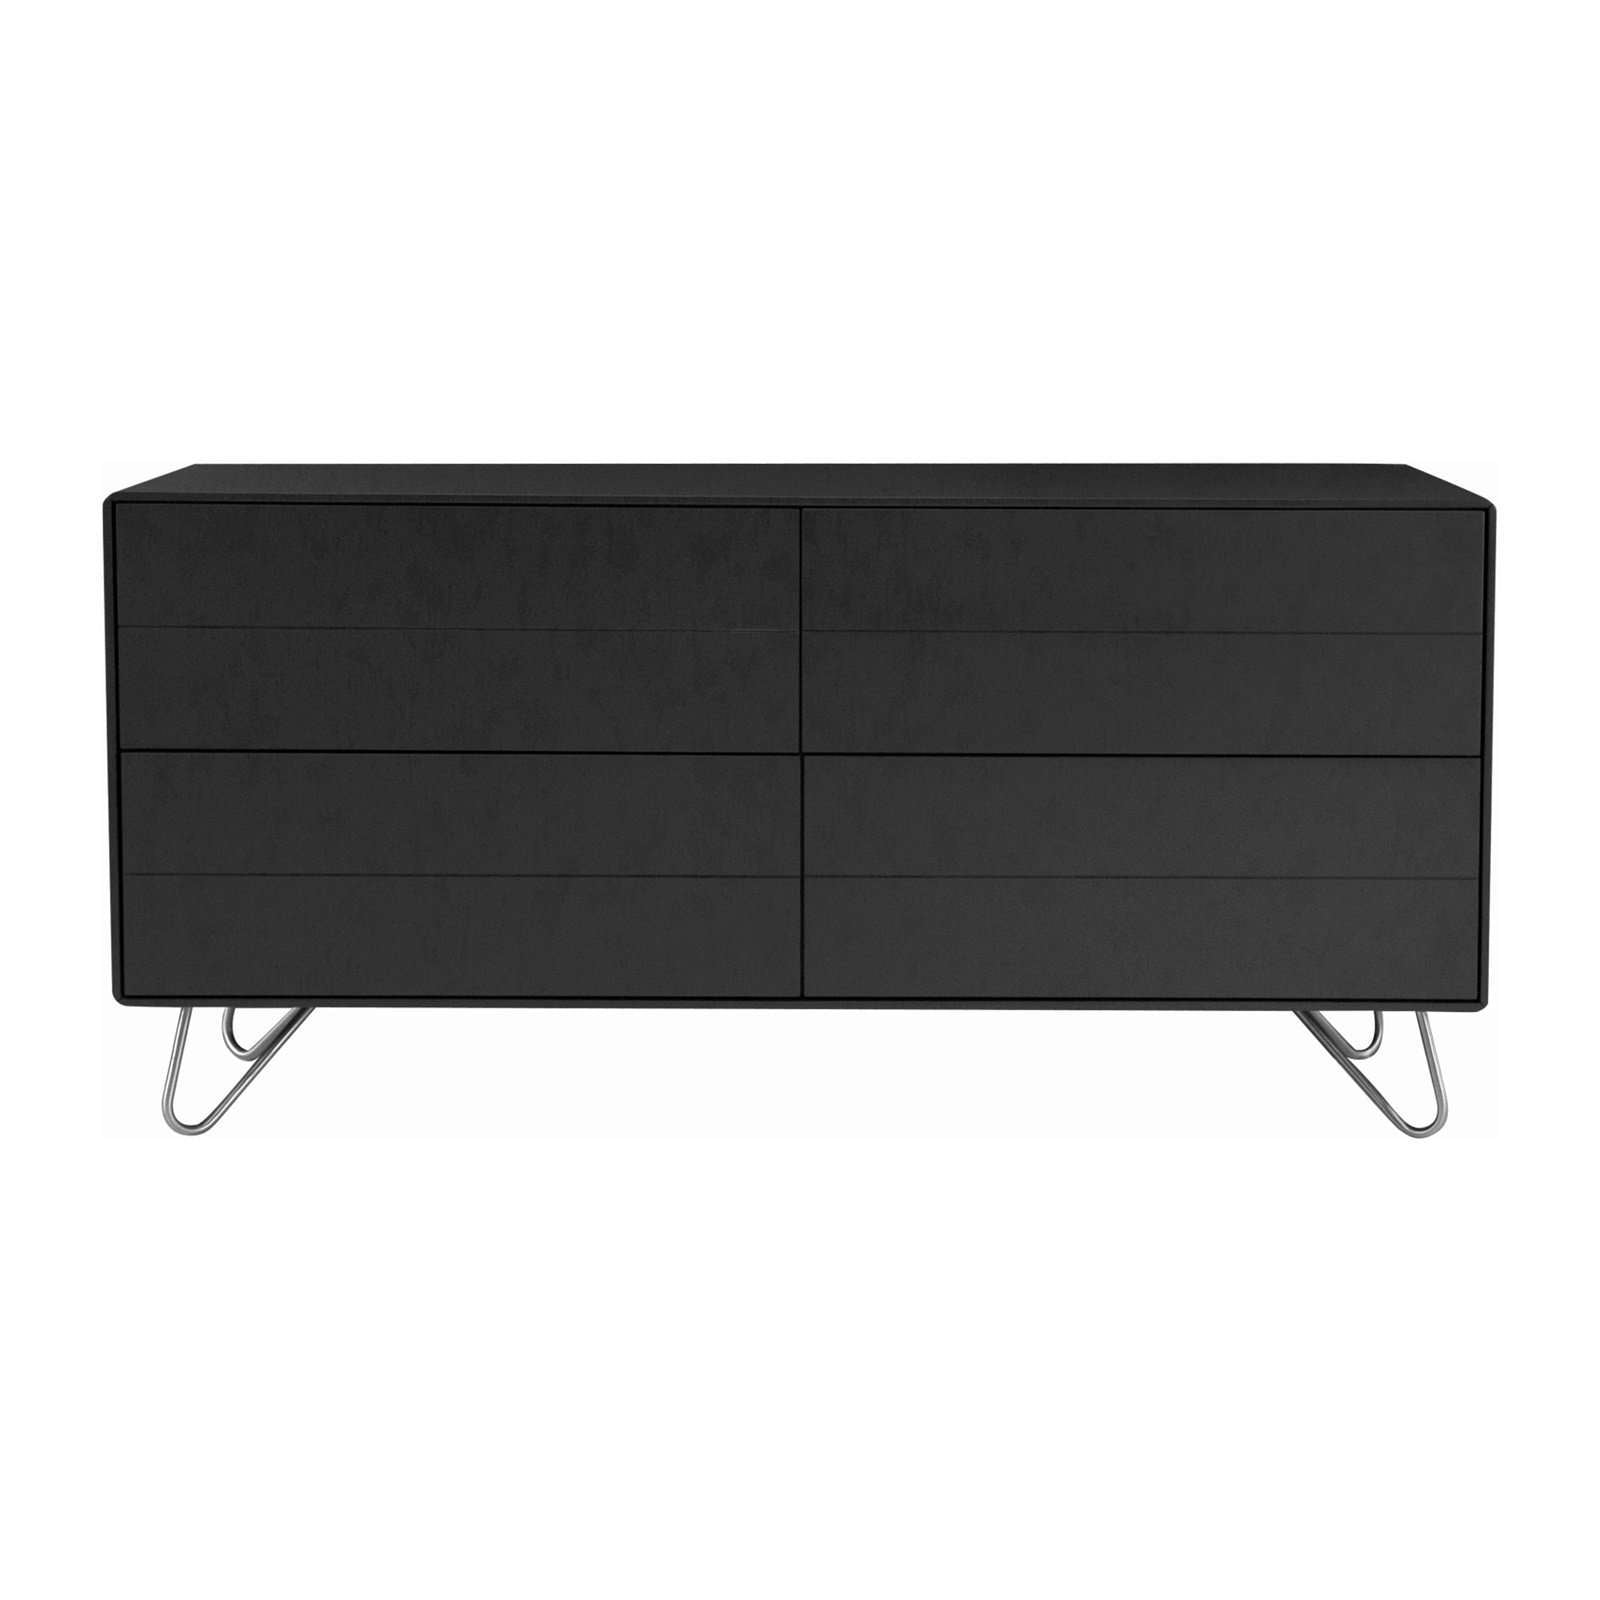 WADE Sideboard In Charcoal Grey Lacquered On Matt Silver Epoxy Leg